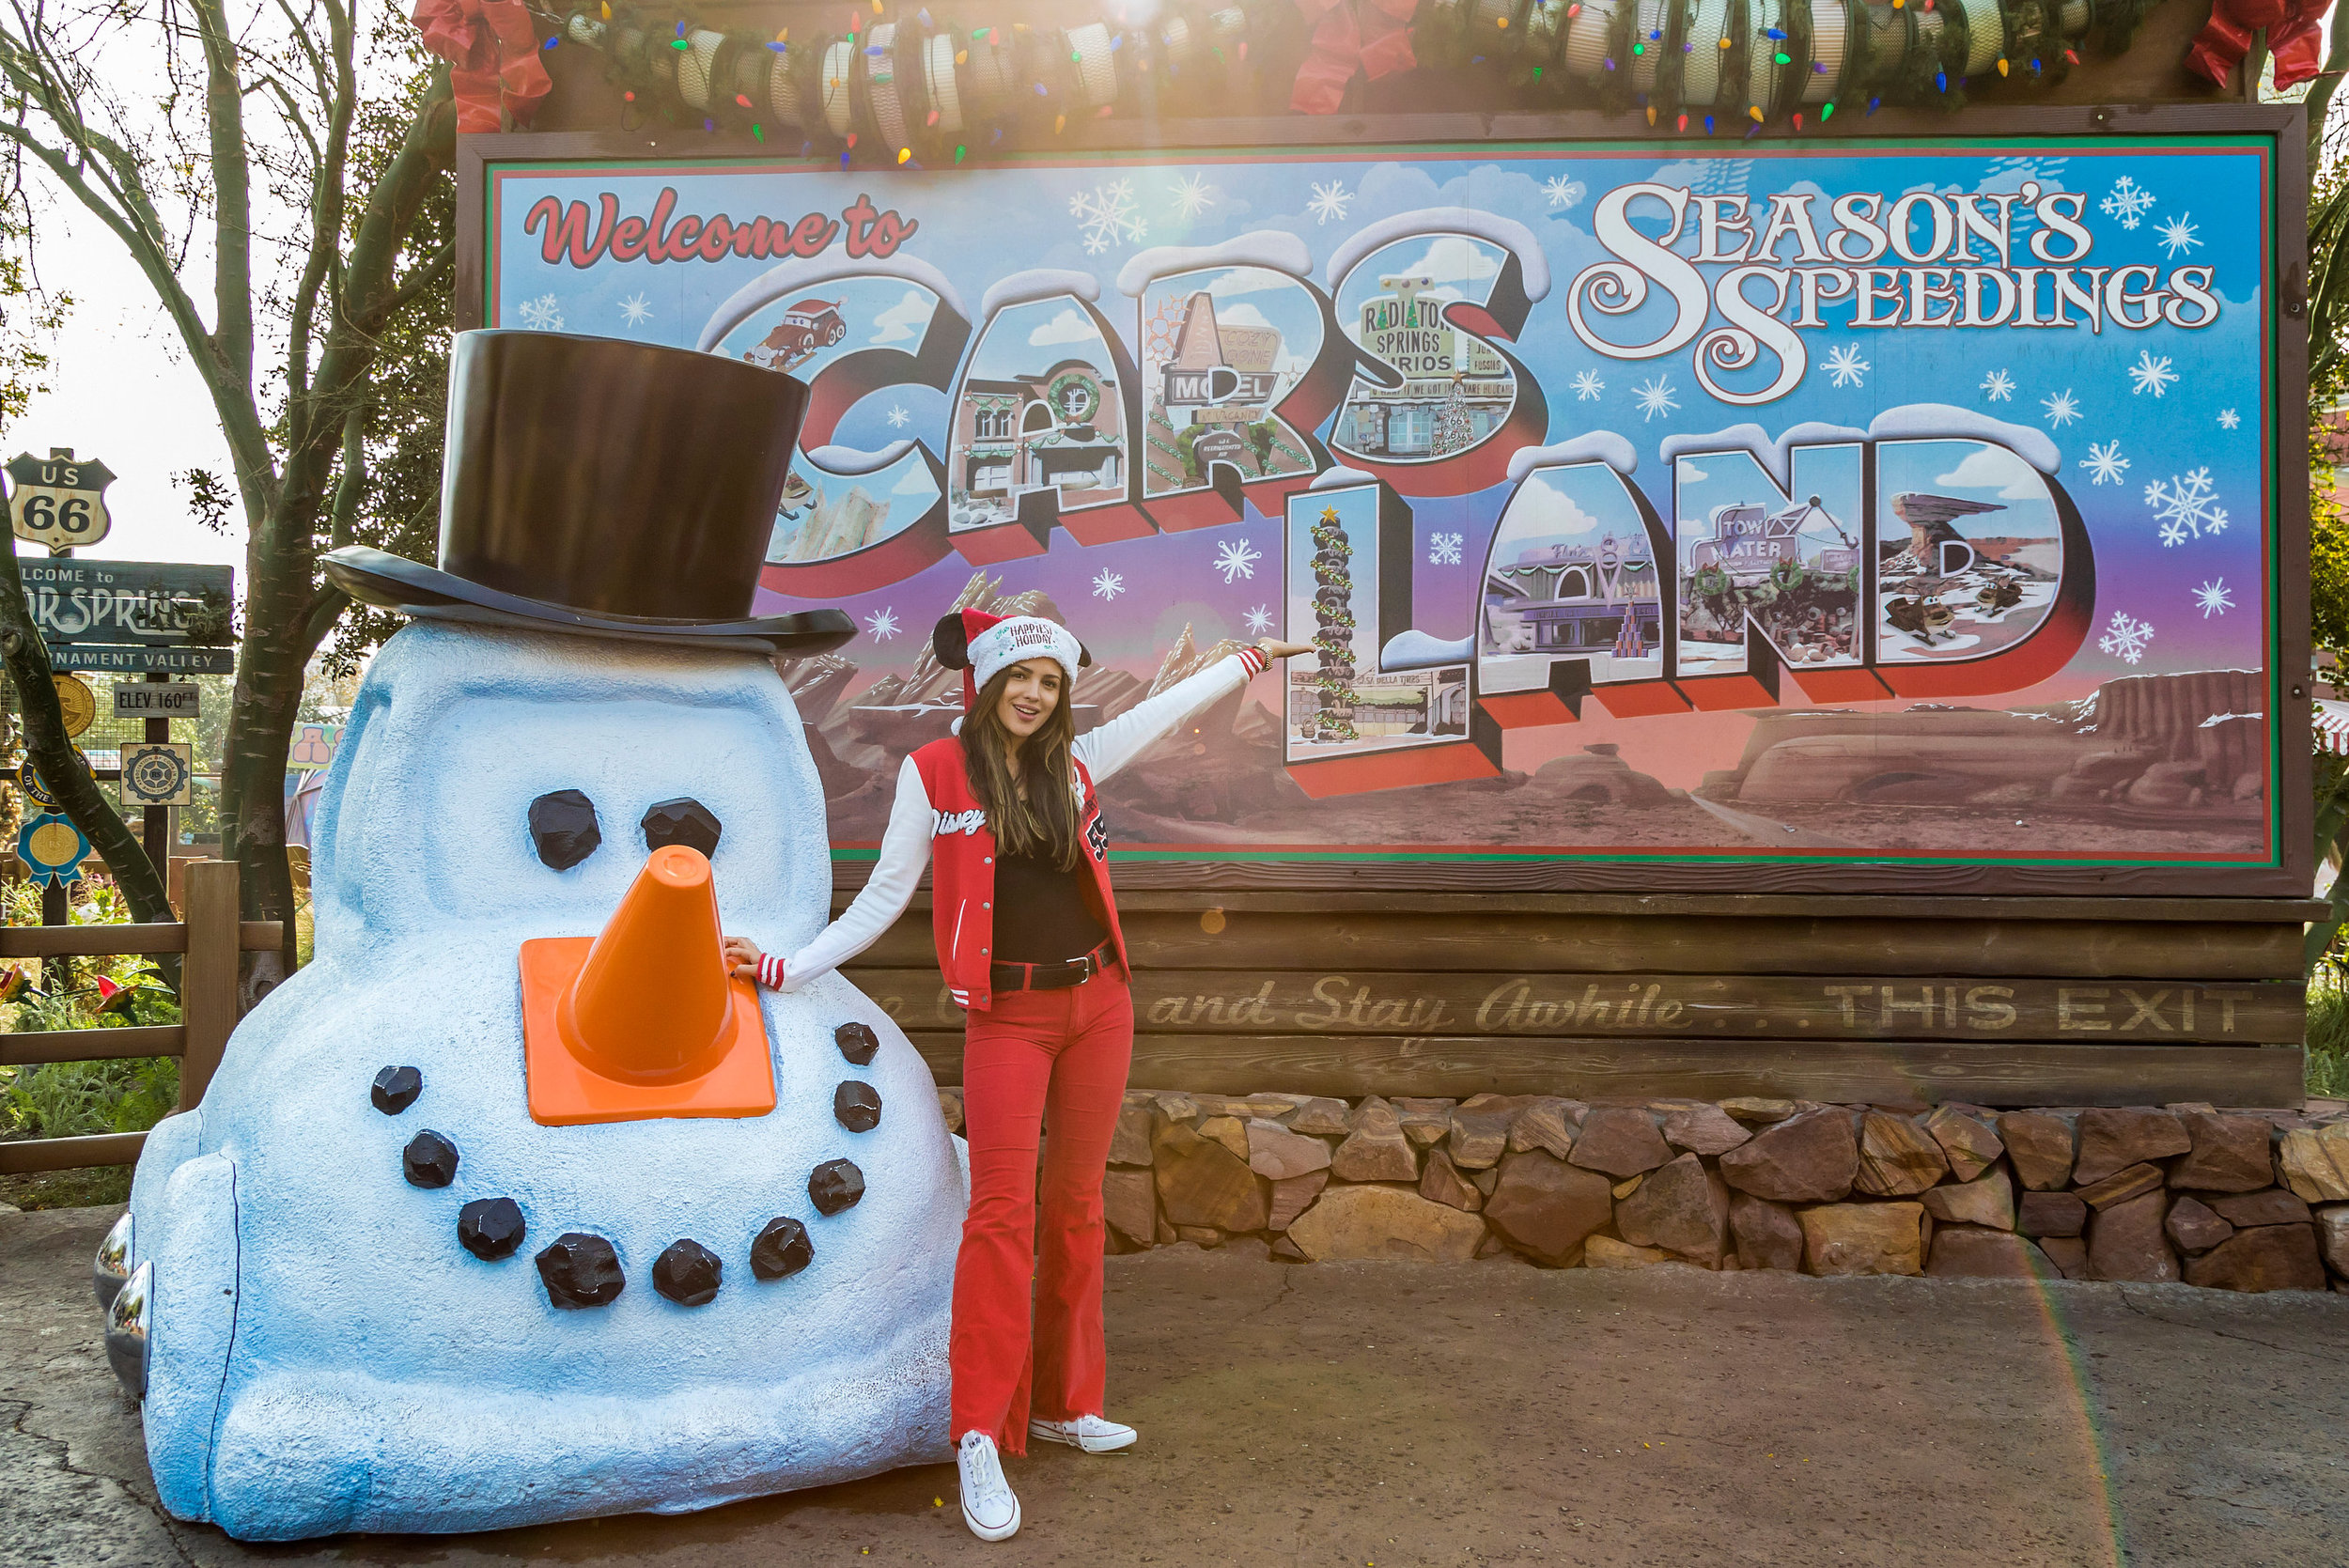 Actress Eiza Gonz�lez enjoys Cars Land at Disney California Adventure Park in Anaheim, Calif., during the holidays, Dec. 24, 2018. The holidays continue at the Disneyland Resort with Disney Festival of Holidays, �Believe � in Holiday Magic� fireworks spectacular and more, through Jan. 6, 2019. (Josh Sudock/Disneyland Resort)